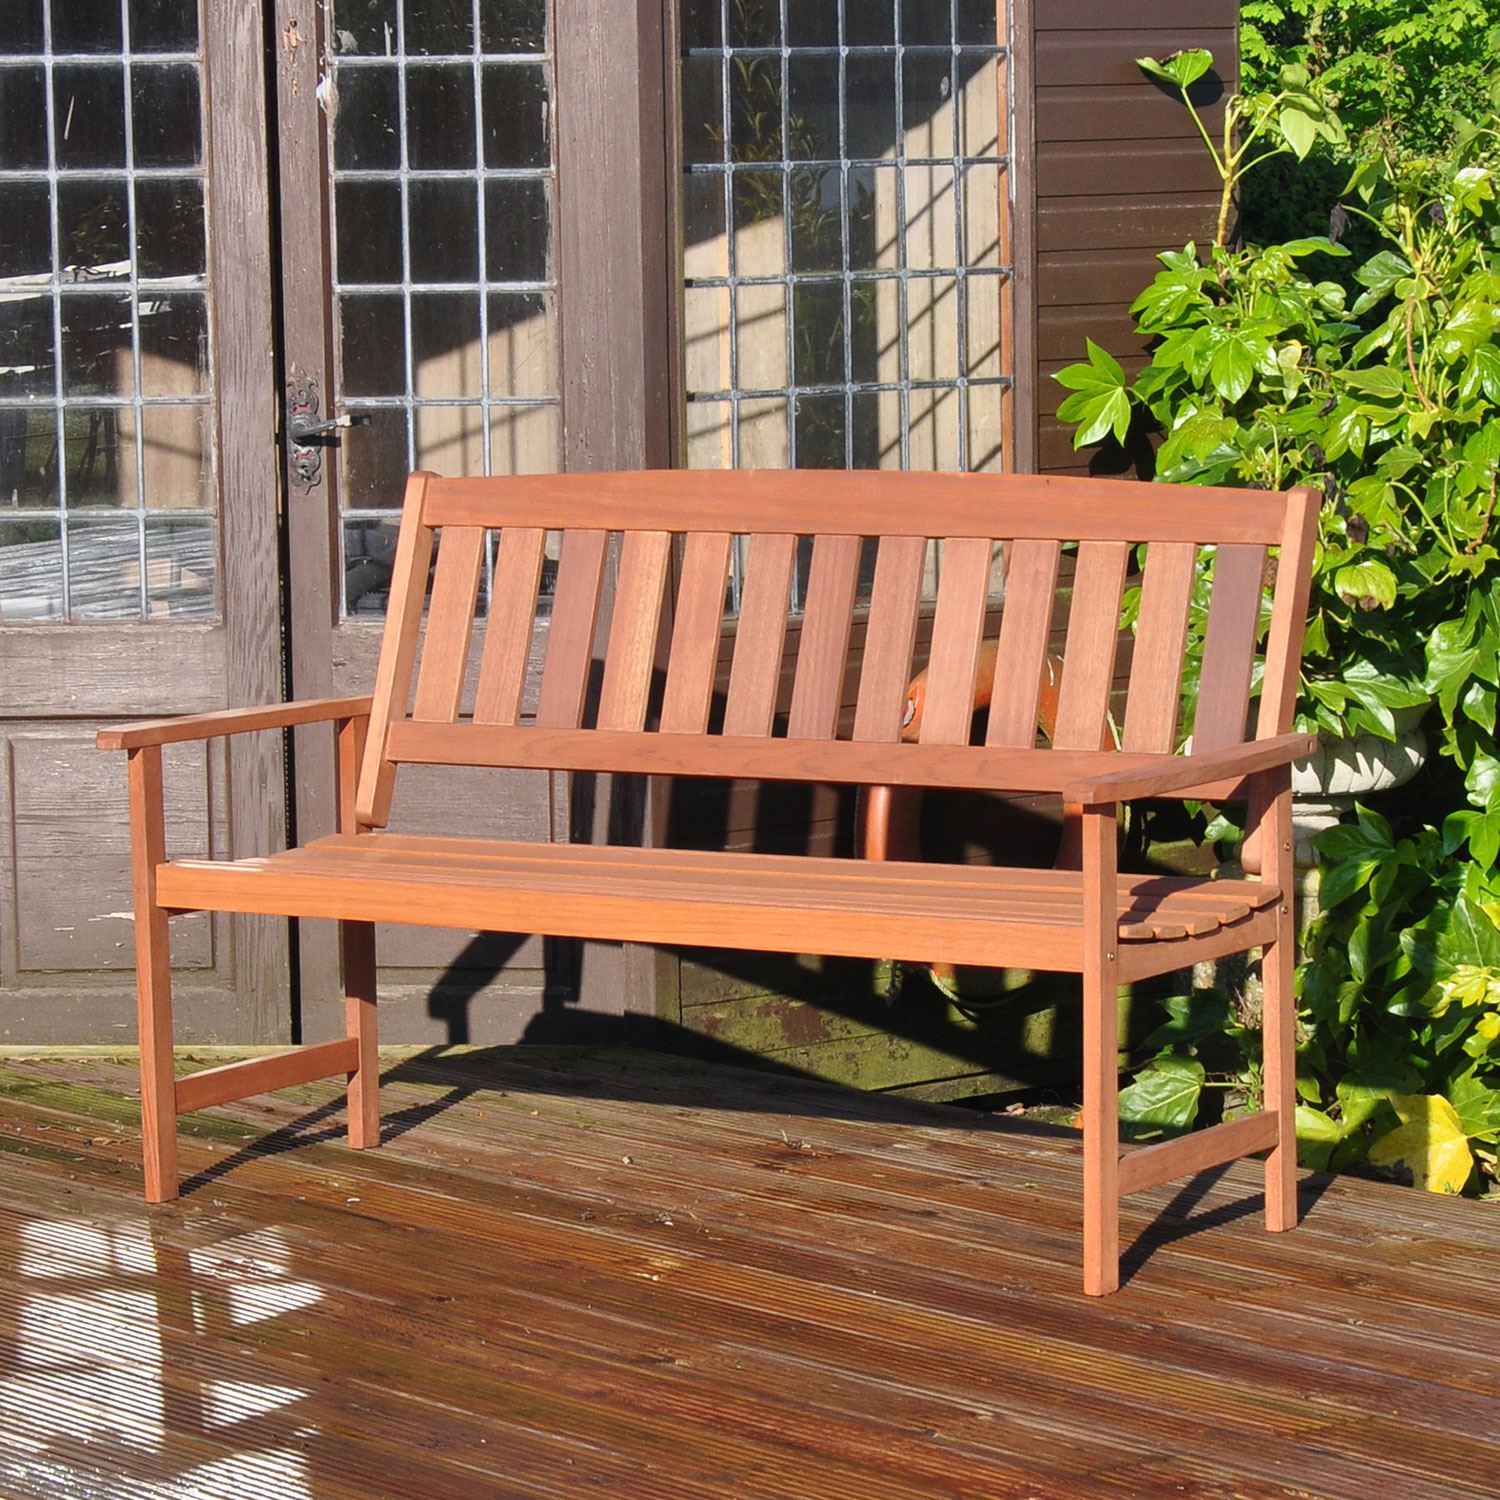 Garden-Bench-2-3-Seater-Wooden-Metal-Legs-Outdoor-Home-Patio-Furniture-Lattice thumbnail 5